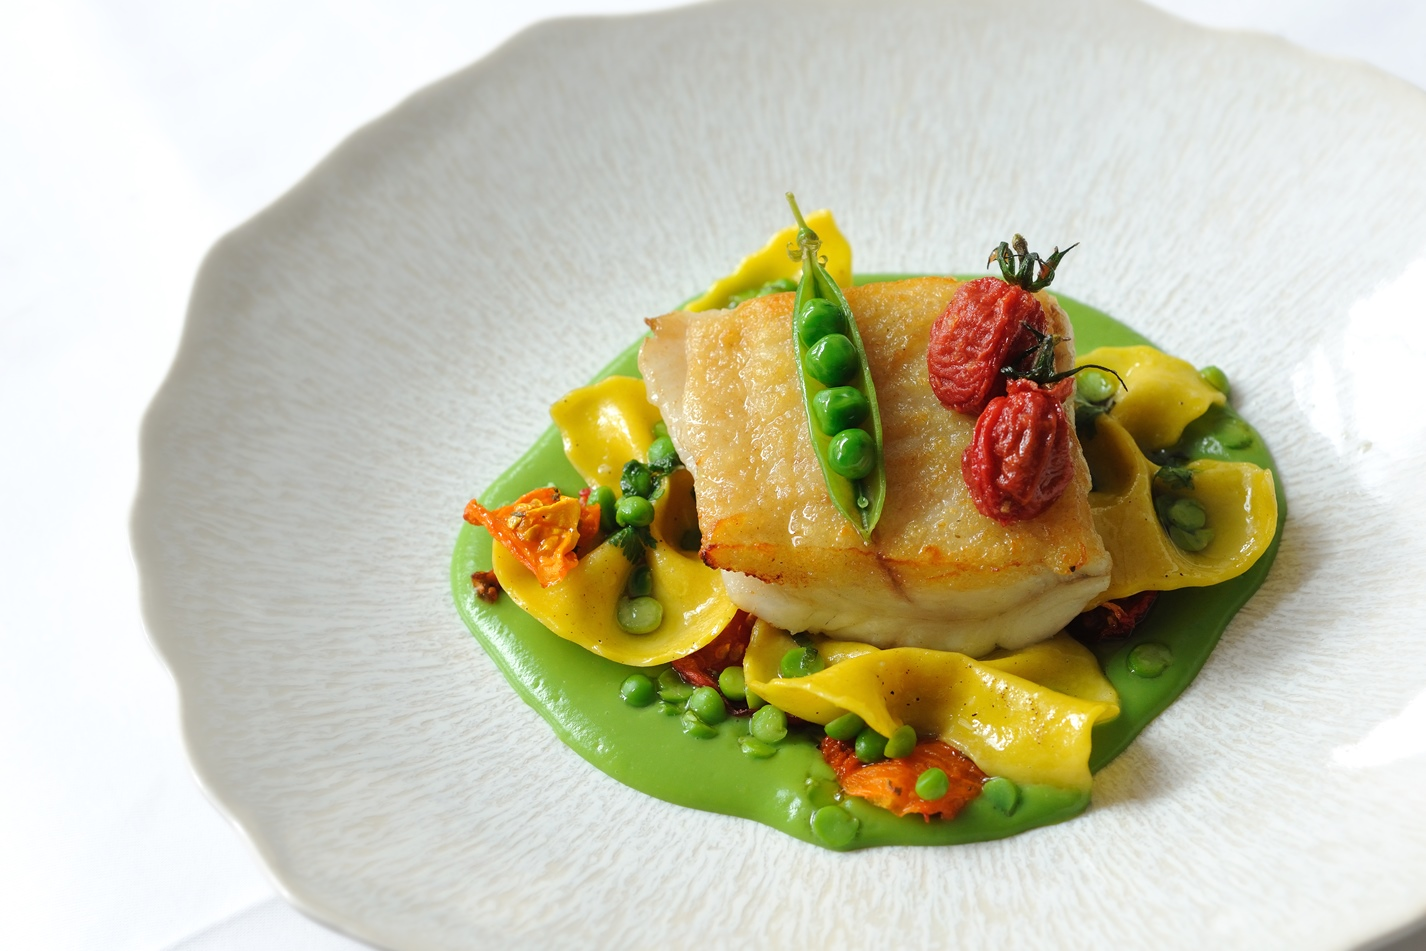 Brill, English peas, heirloom tomatoes, farfalle